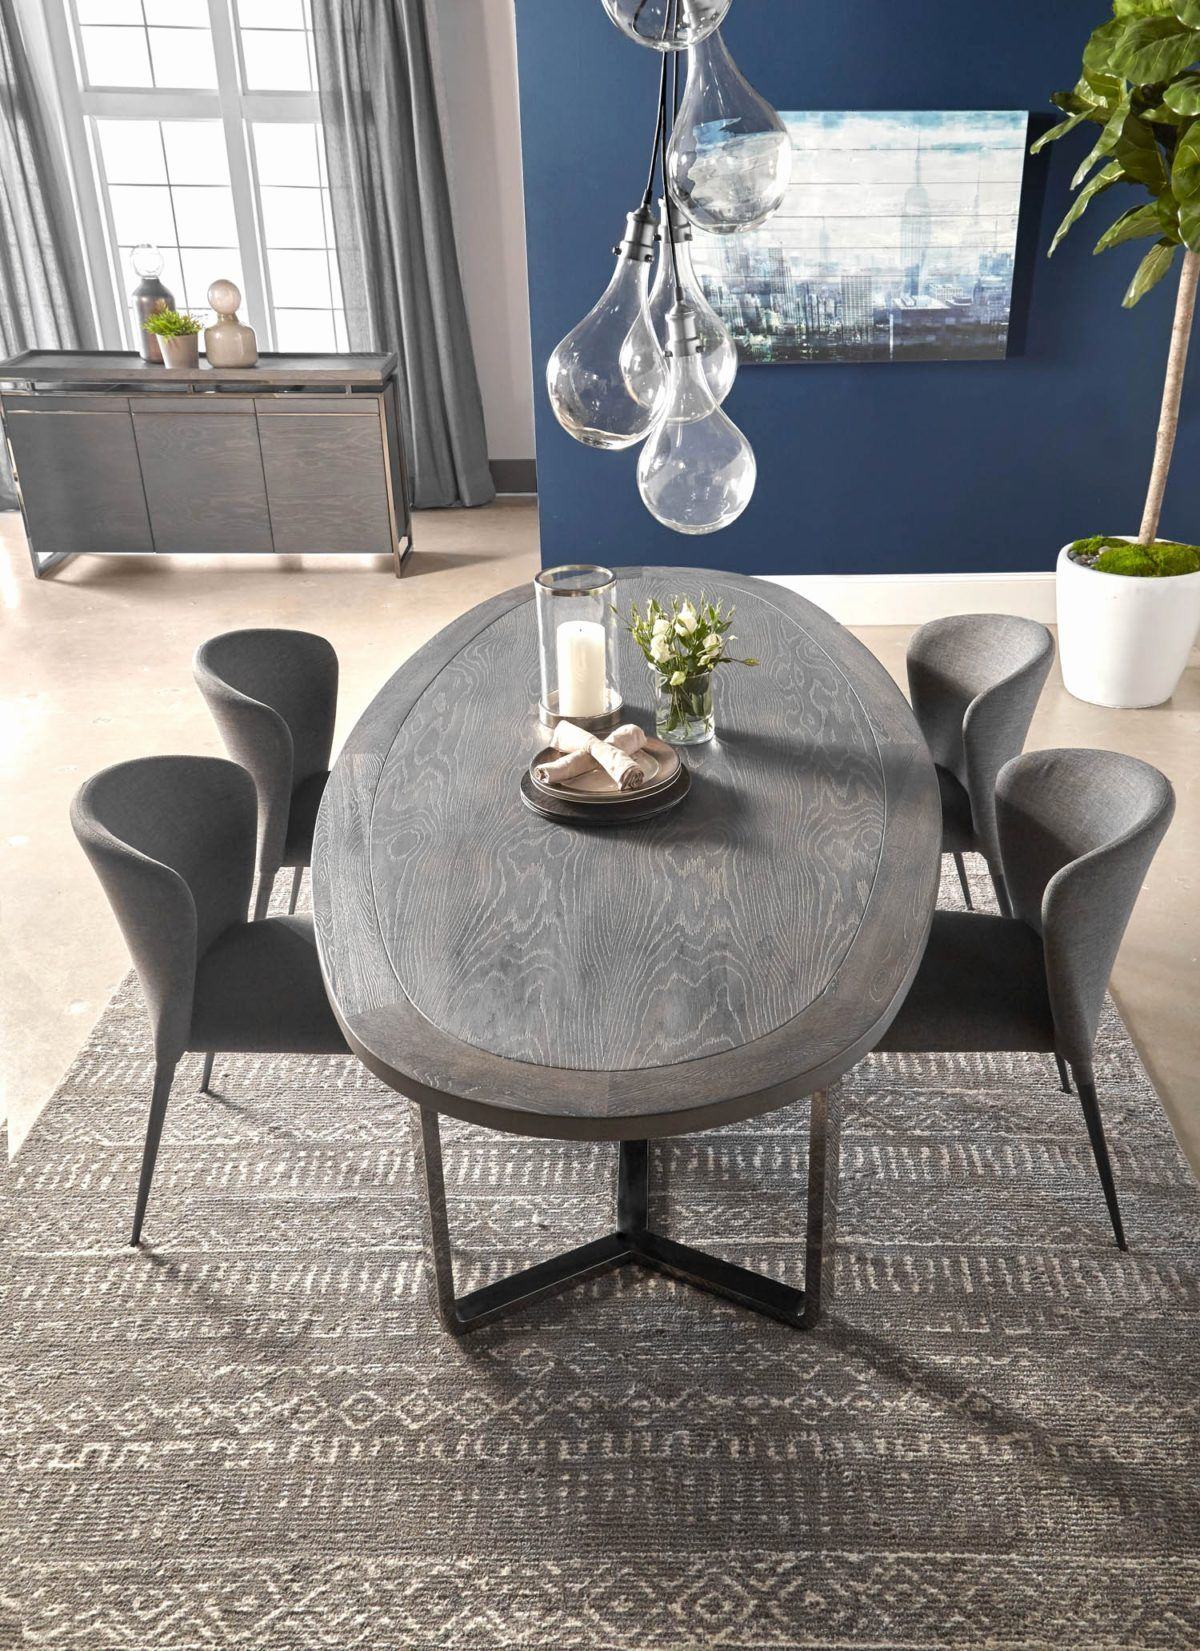 Magnificent Gray Oval Dining Table With Gray Chair And Nifty Lamp